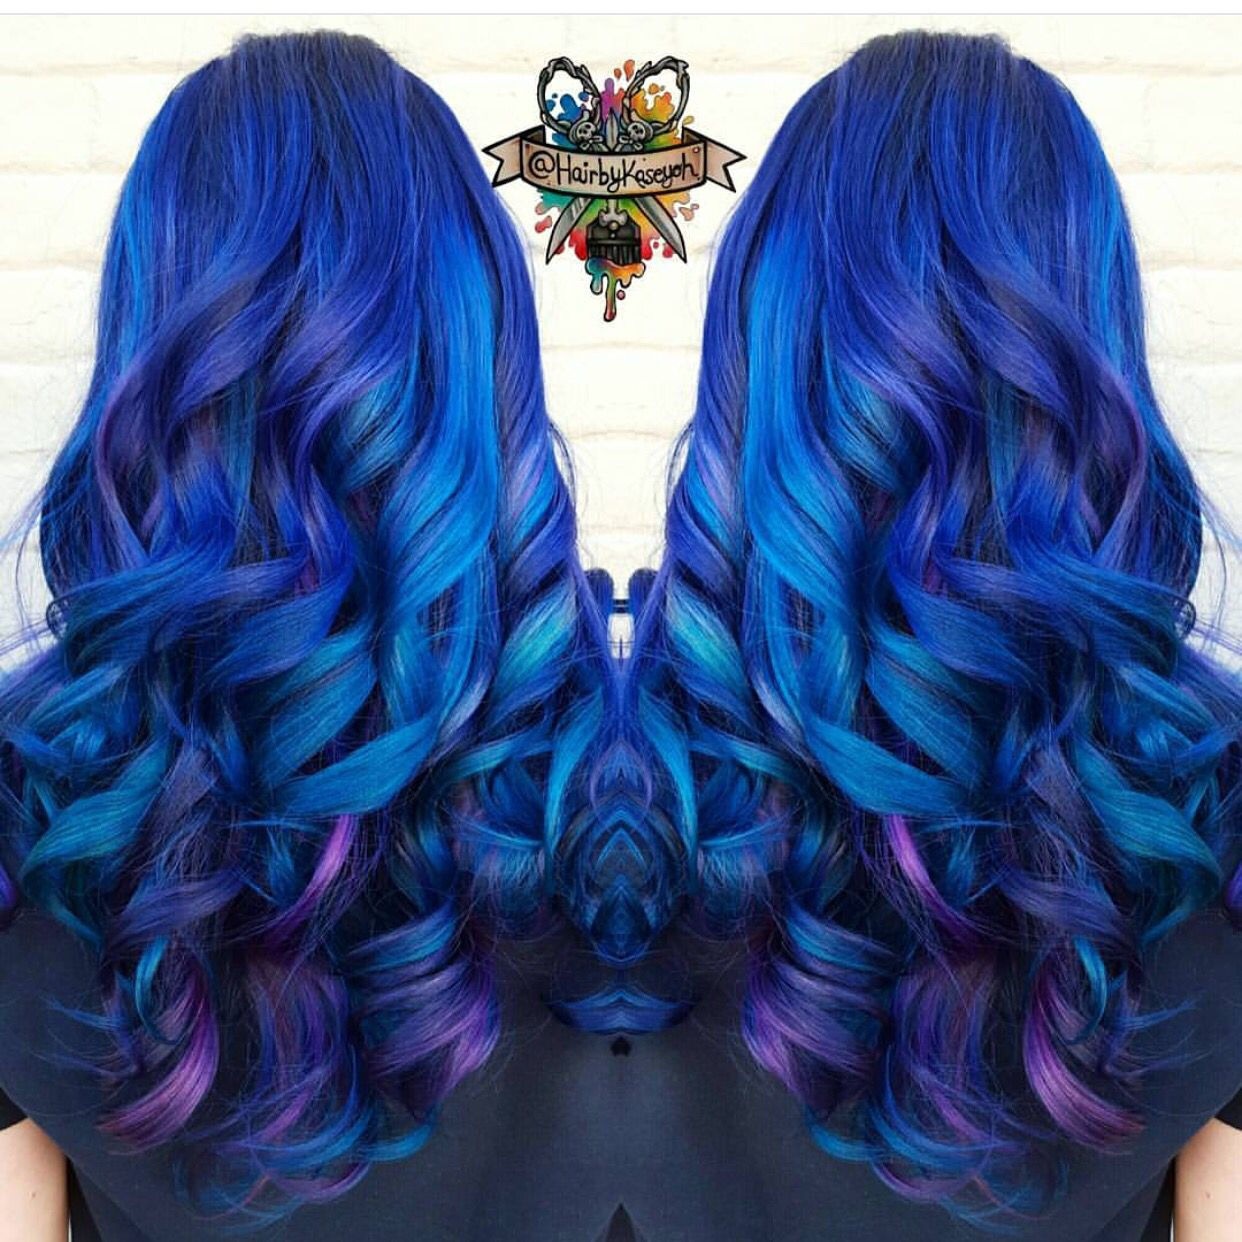 Beautiful blue and purple hair on long curly hair by hairbykoh